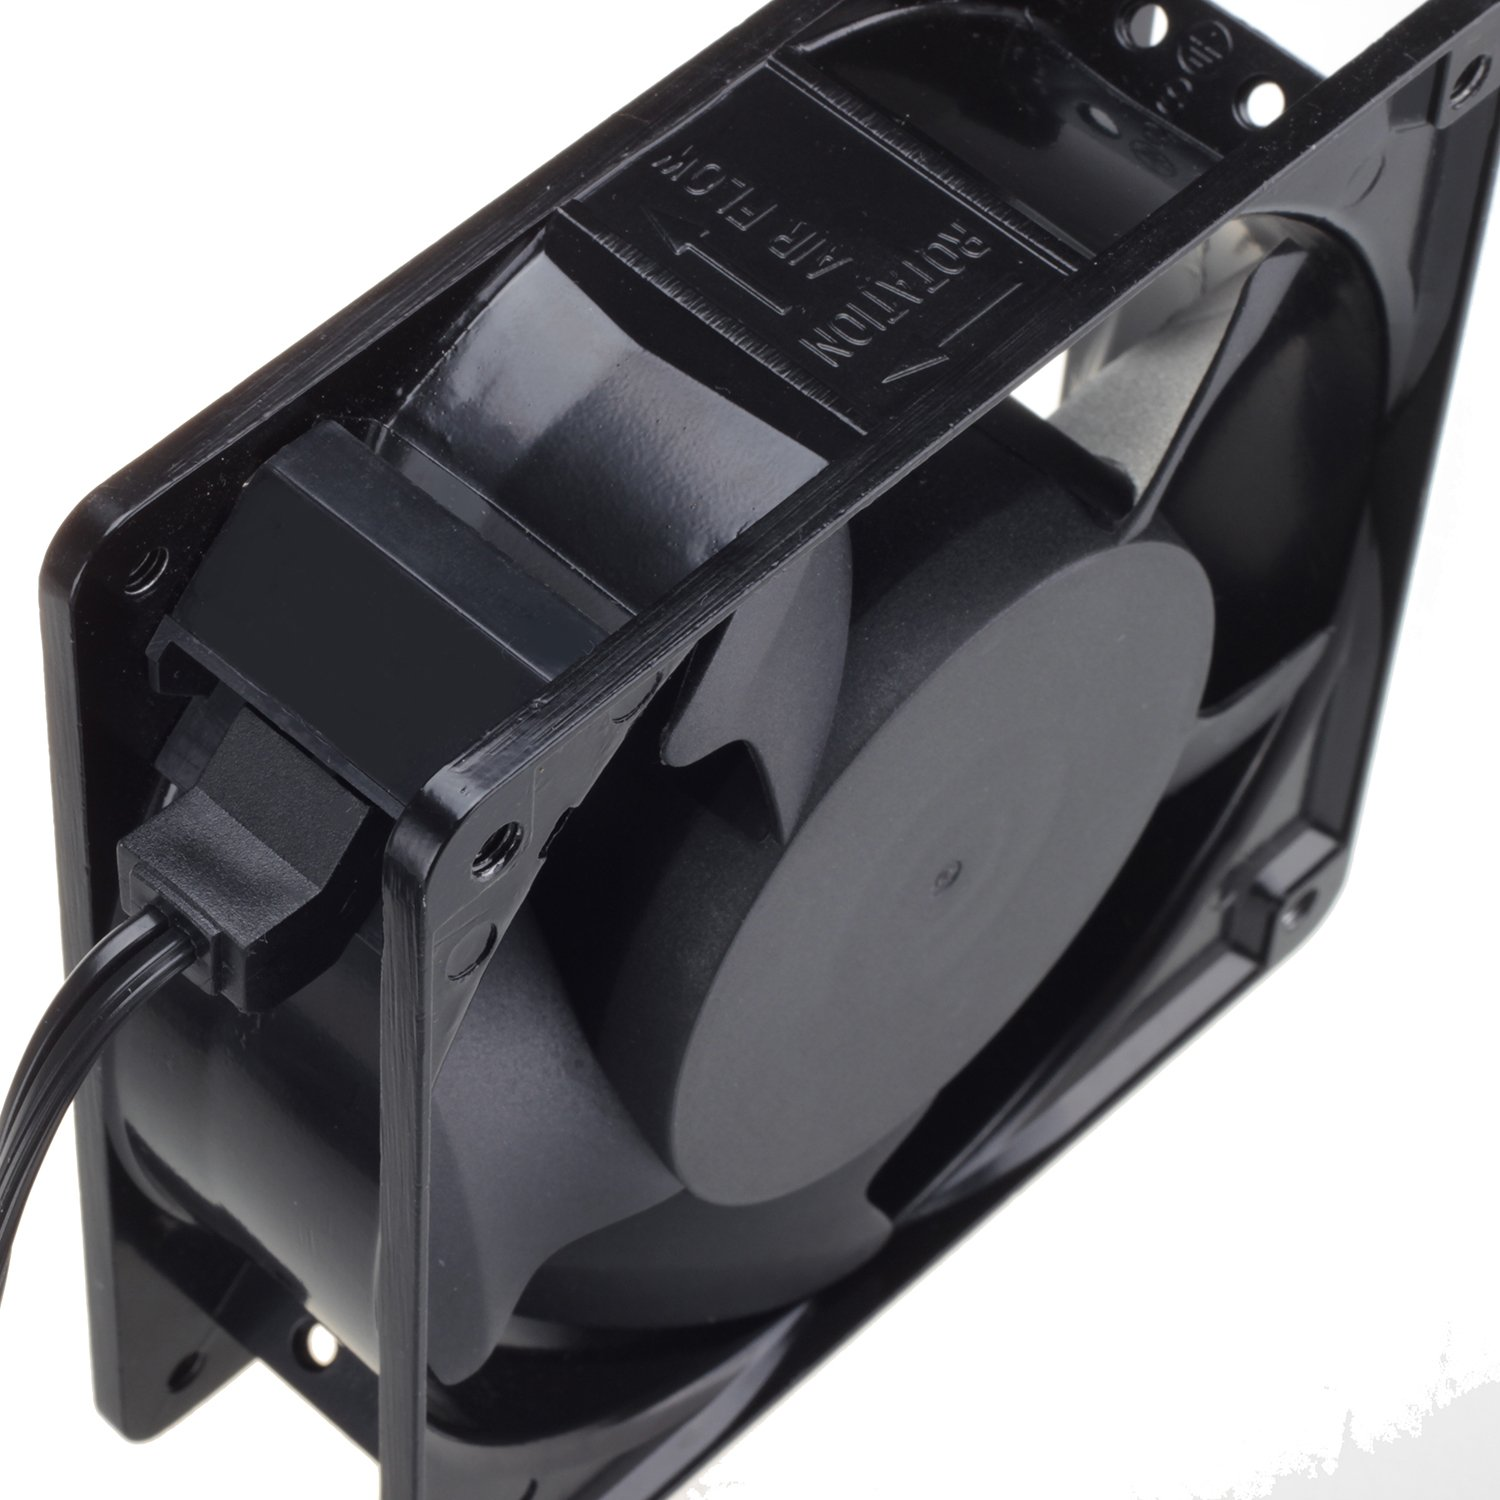 120mm Fan,Zhanye Muffin 1238 AC 120V Computer Axial Cooling Fan, High Speed Exhaust with Metal Net and 4-feet Power Cord by Zhanye (Image #3)